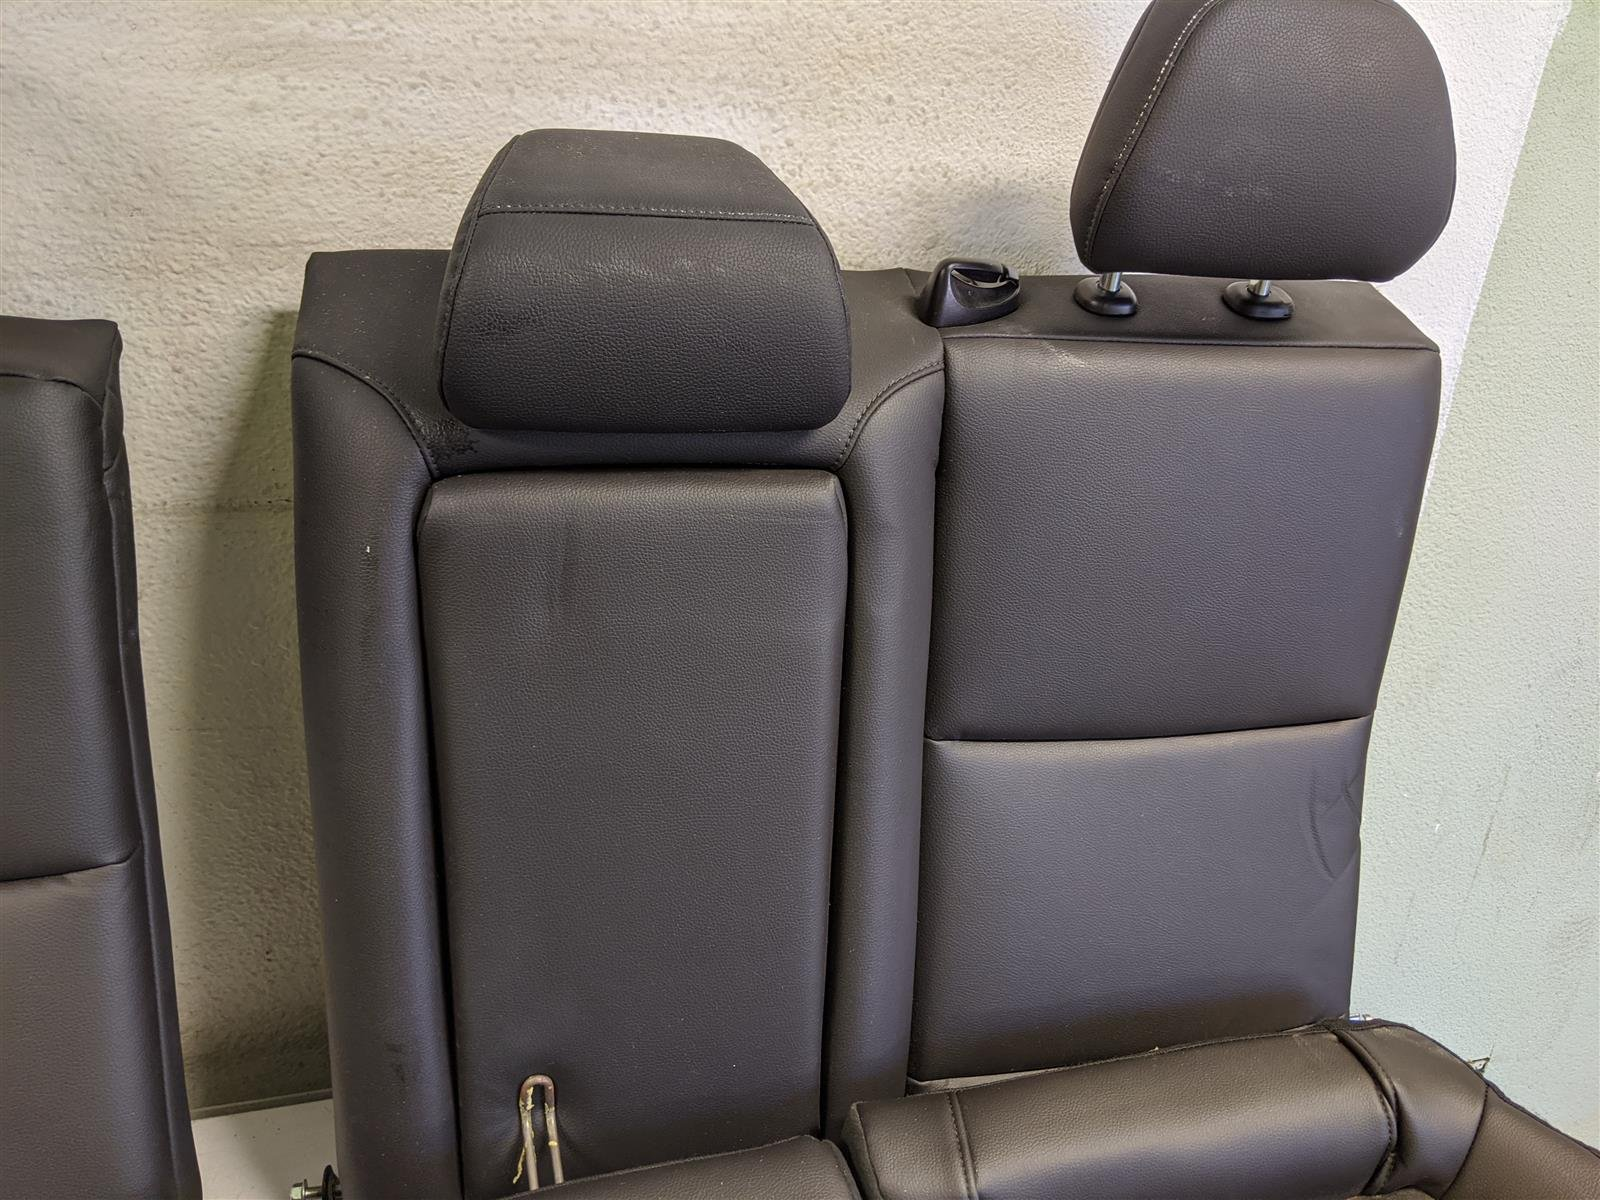 2017 Acura TLX Rear Seats Assembly Black Replacement